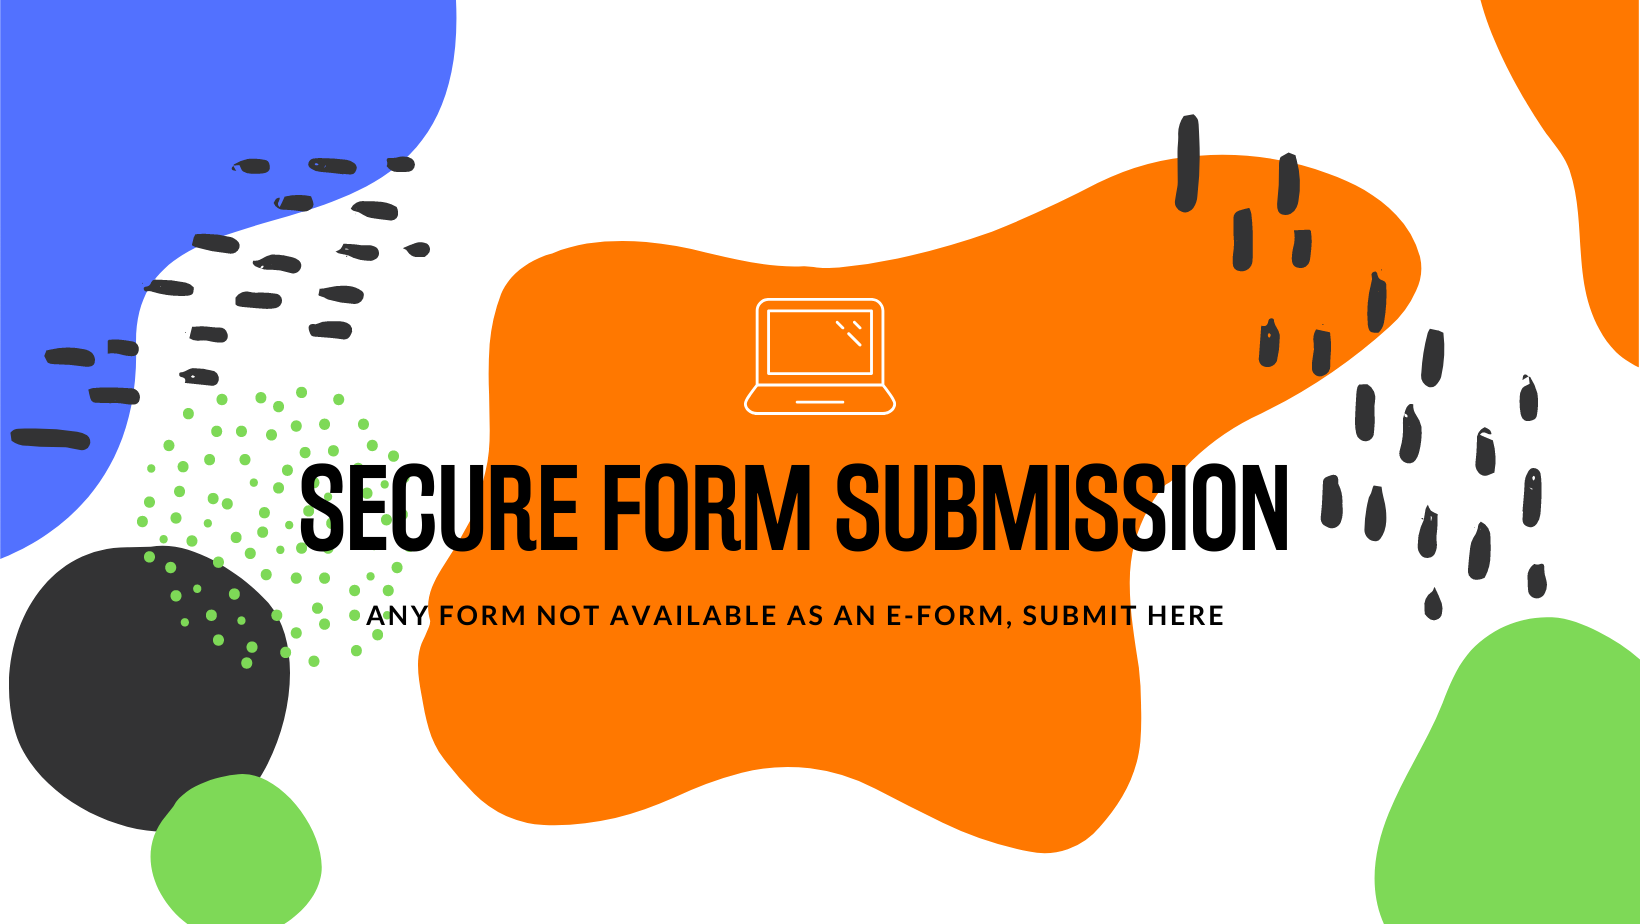 Secure Form Submission, any form not available as an e-form, submit here